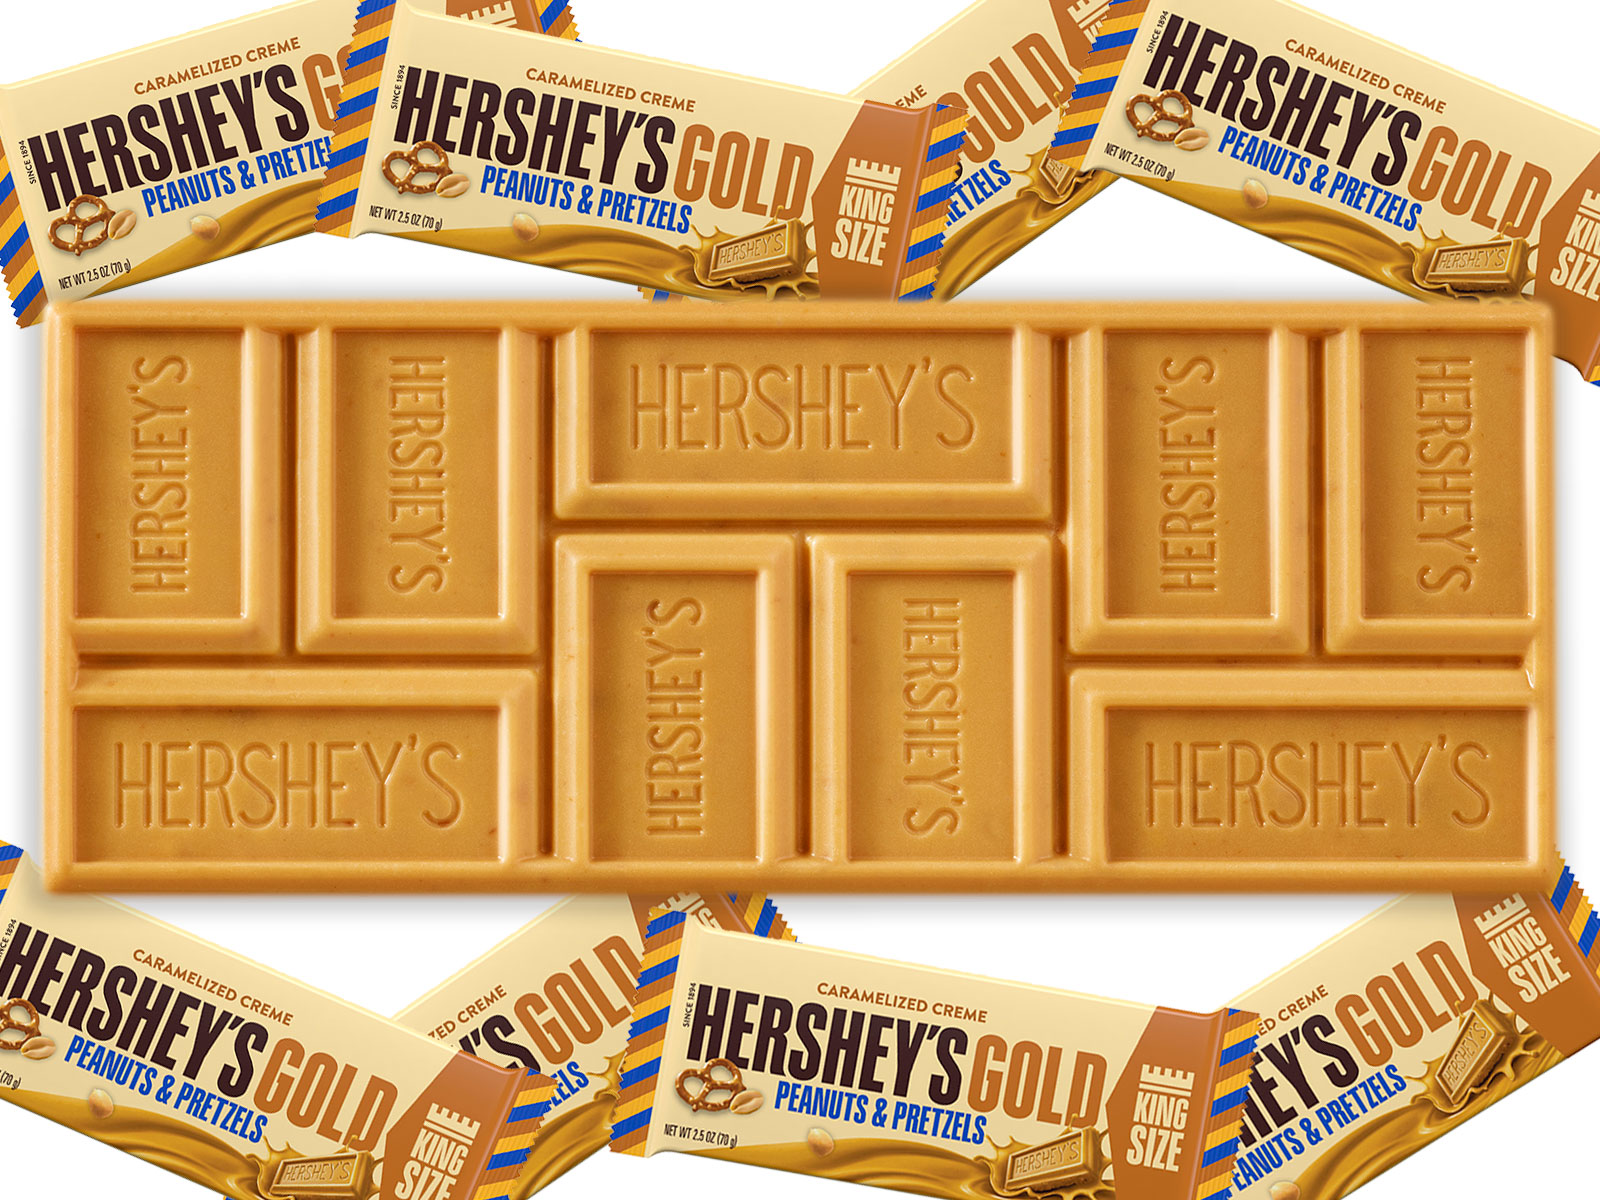 Hershey's just revealed its first new bar in 22 years